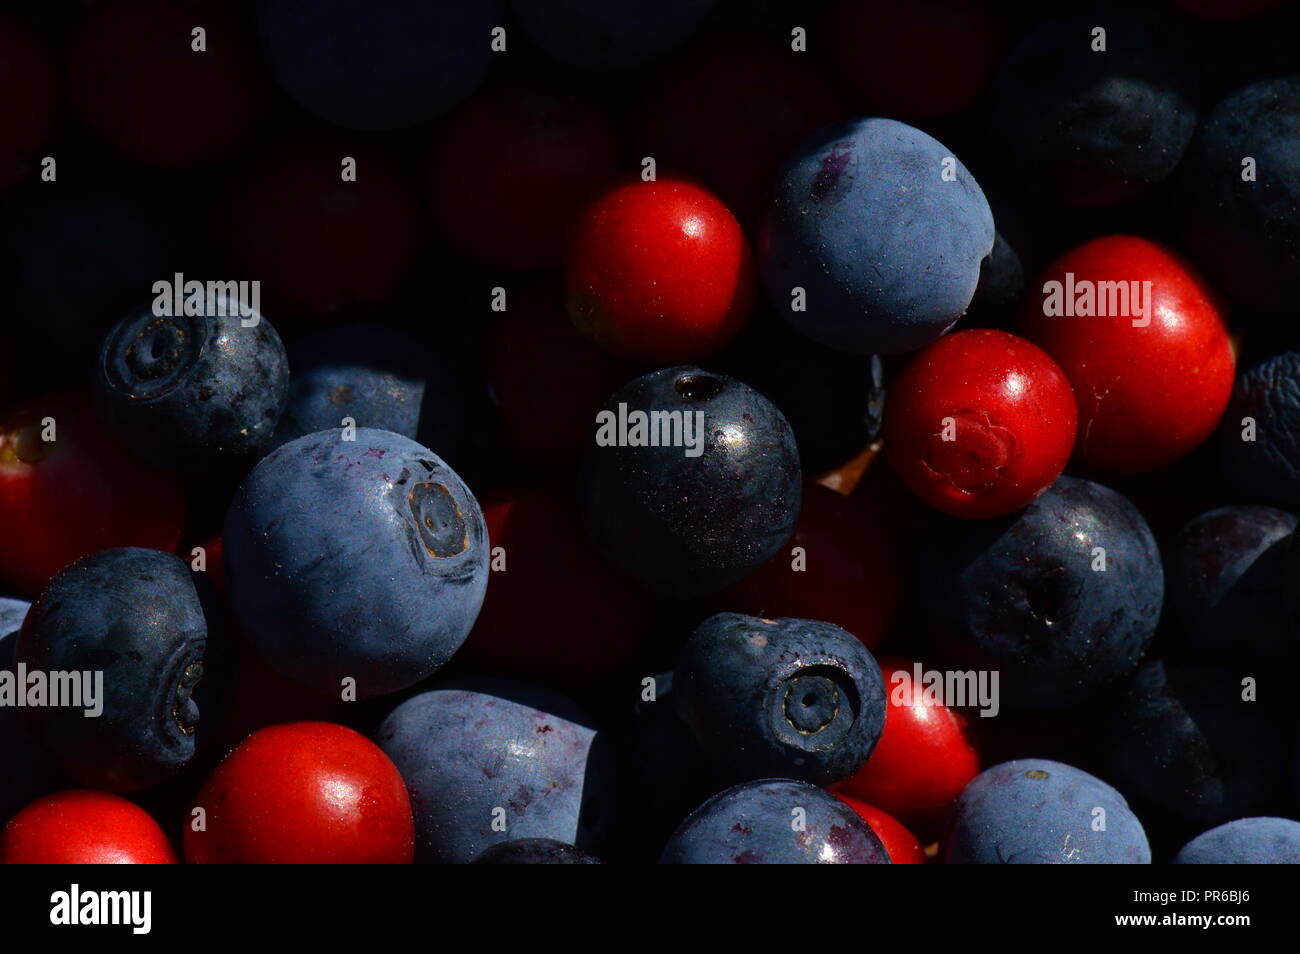 Berries cranberries together with berries of blueberries and marsh blueberries berries background - Stock Image